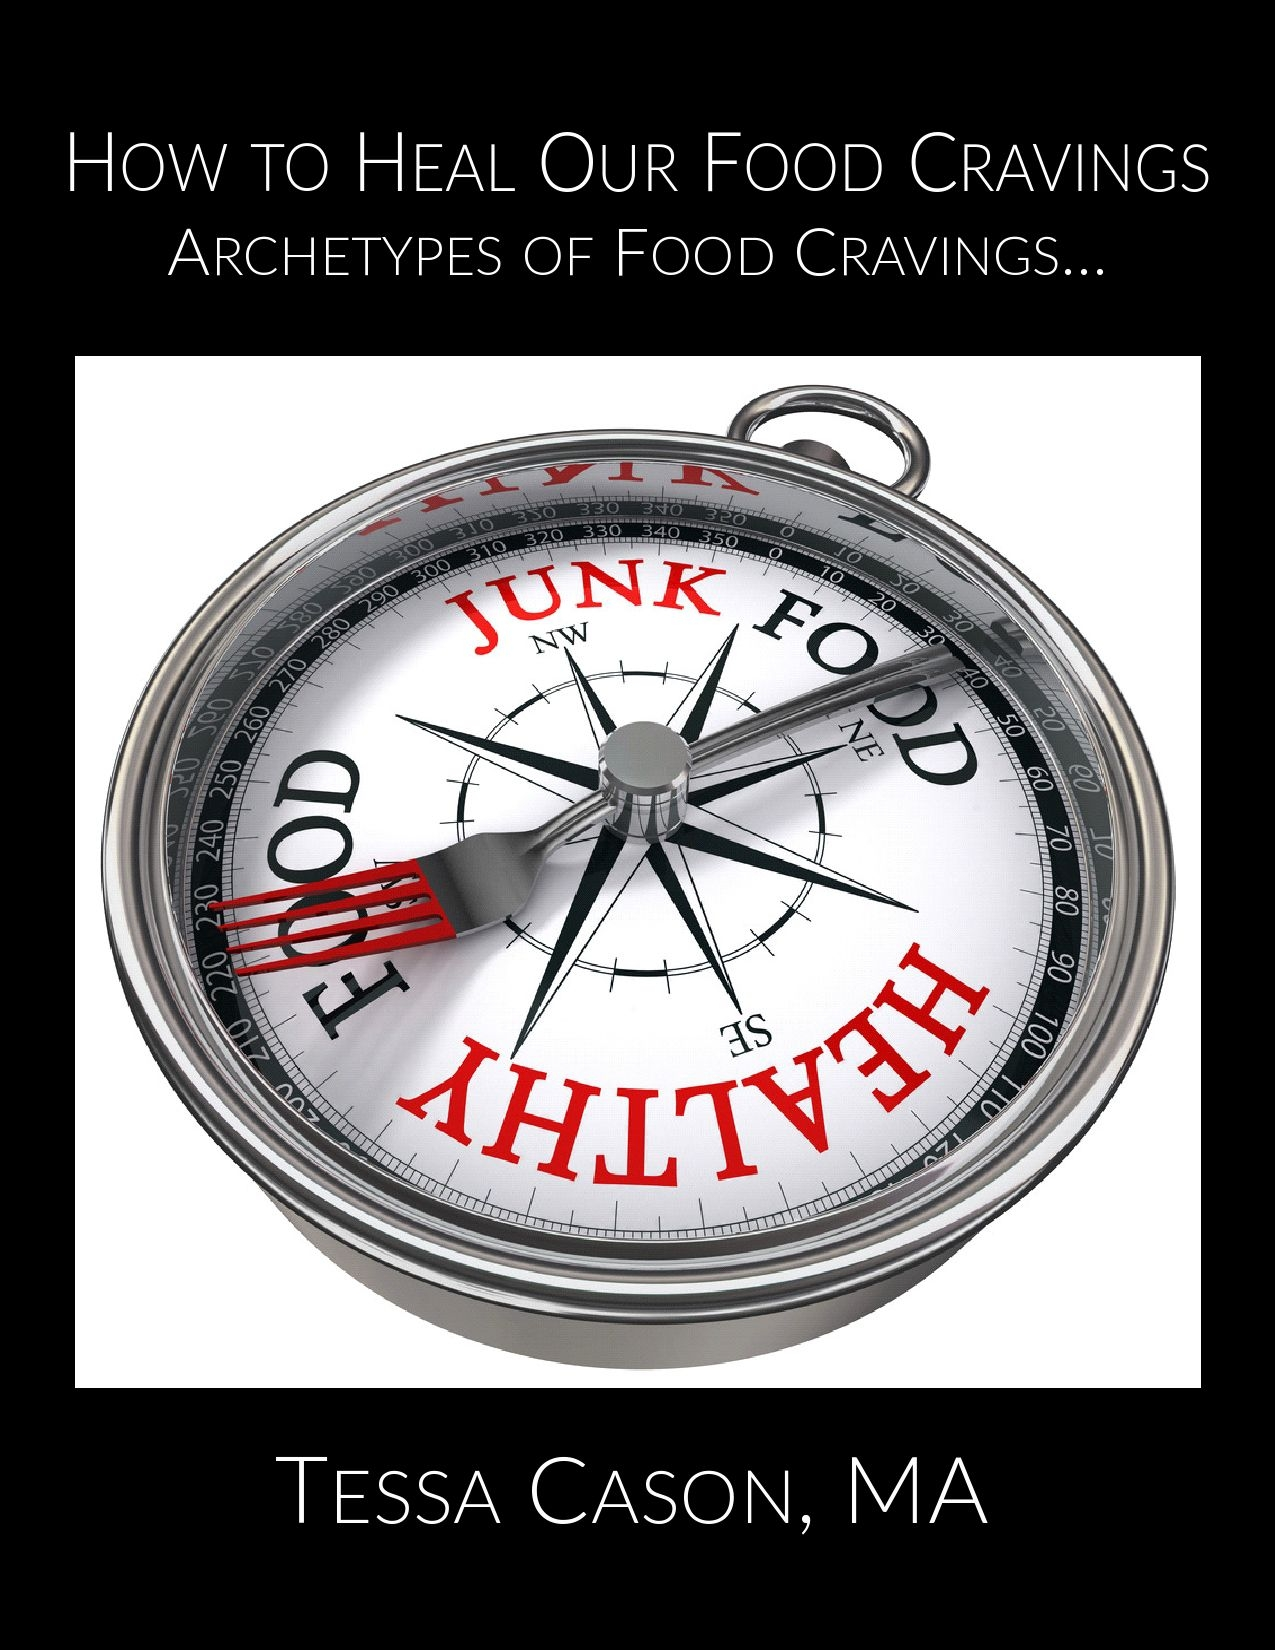 How To Heal Our Food Cravings